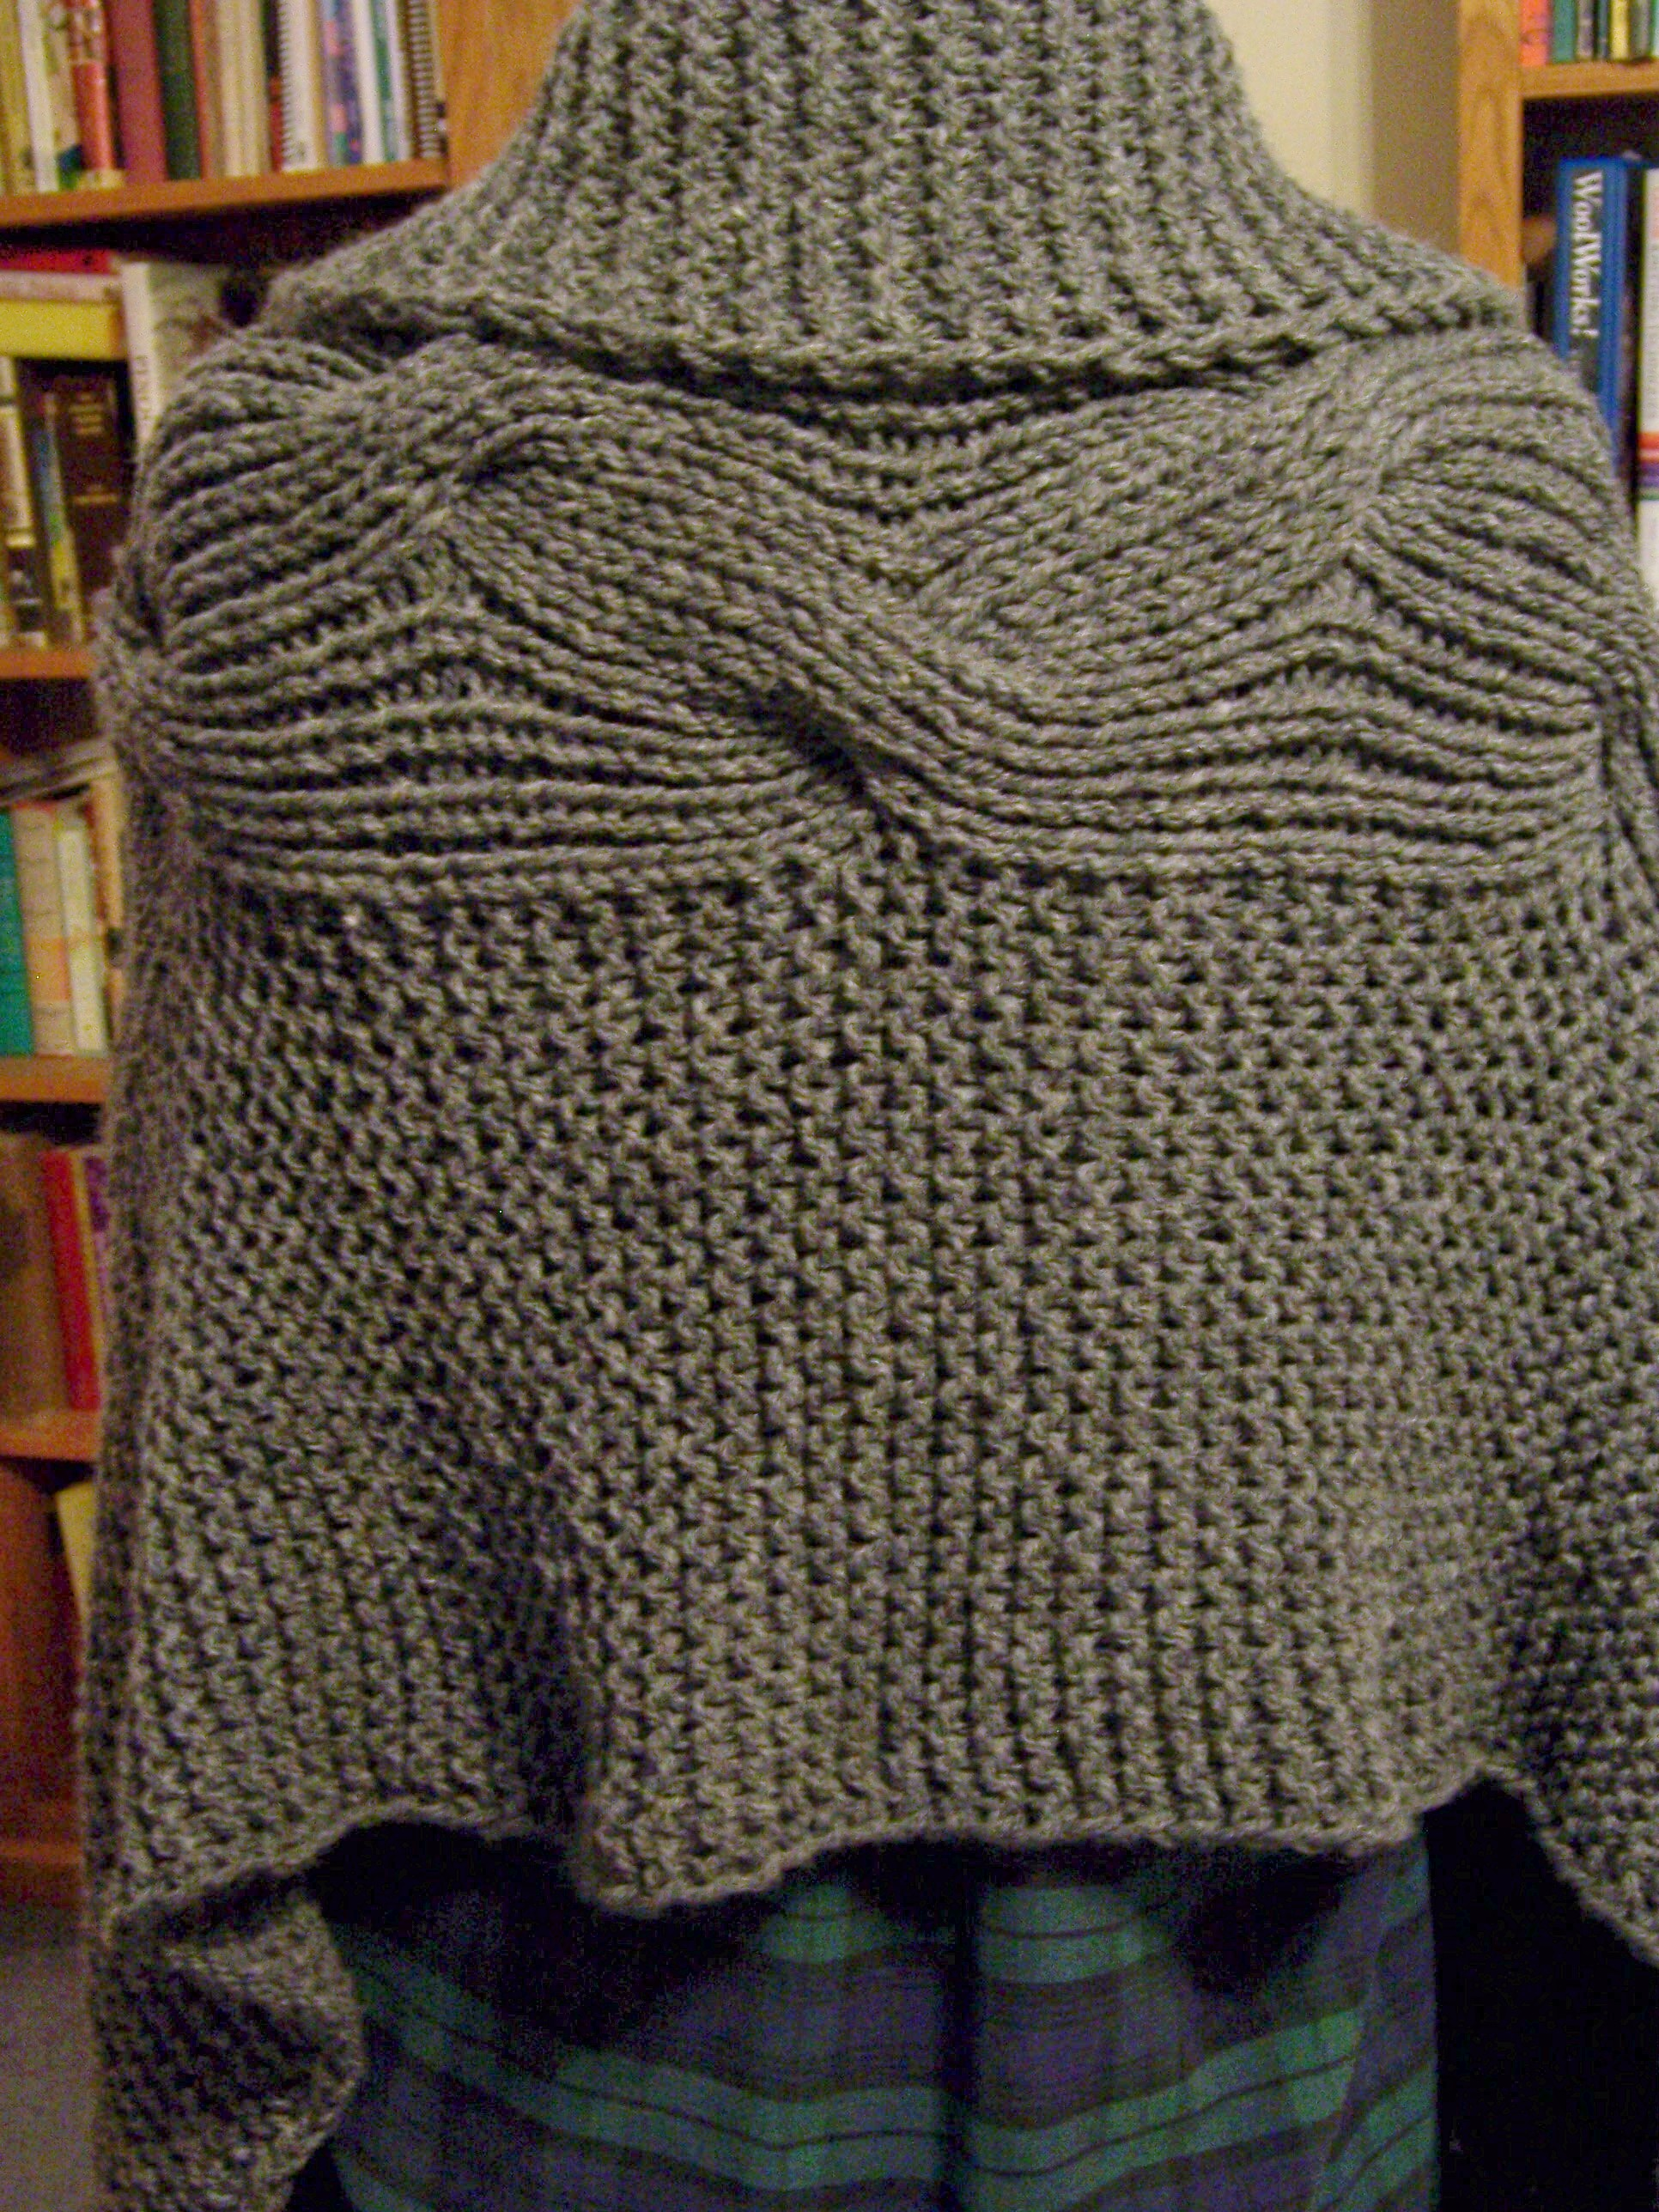 knitting books | By Hand, With Heart